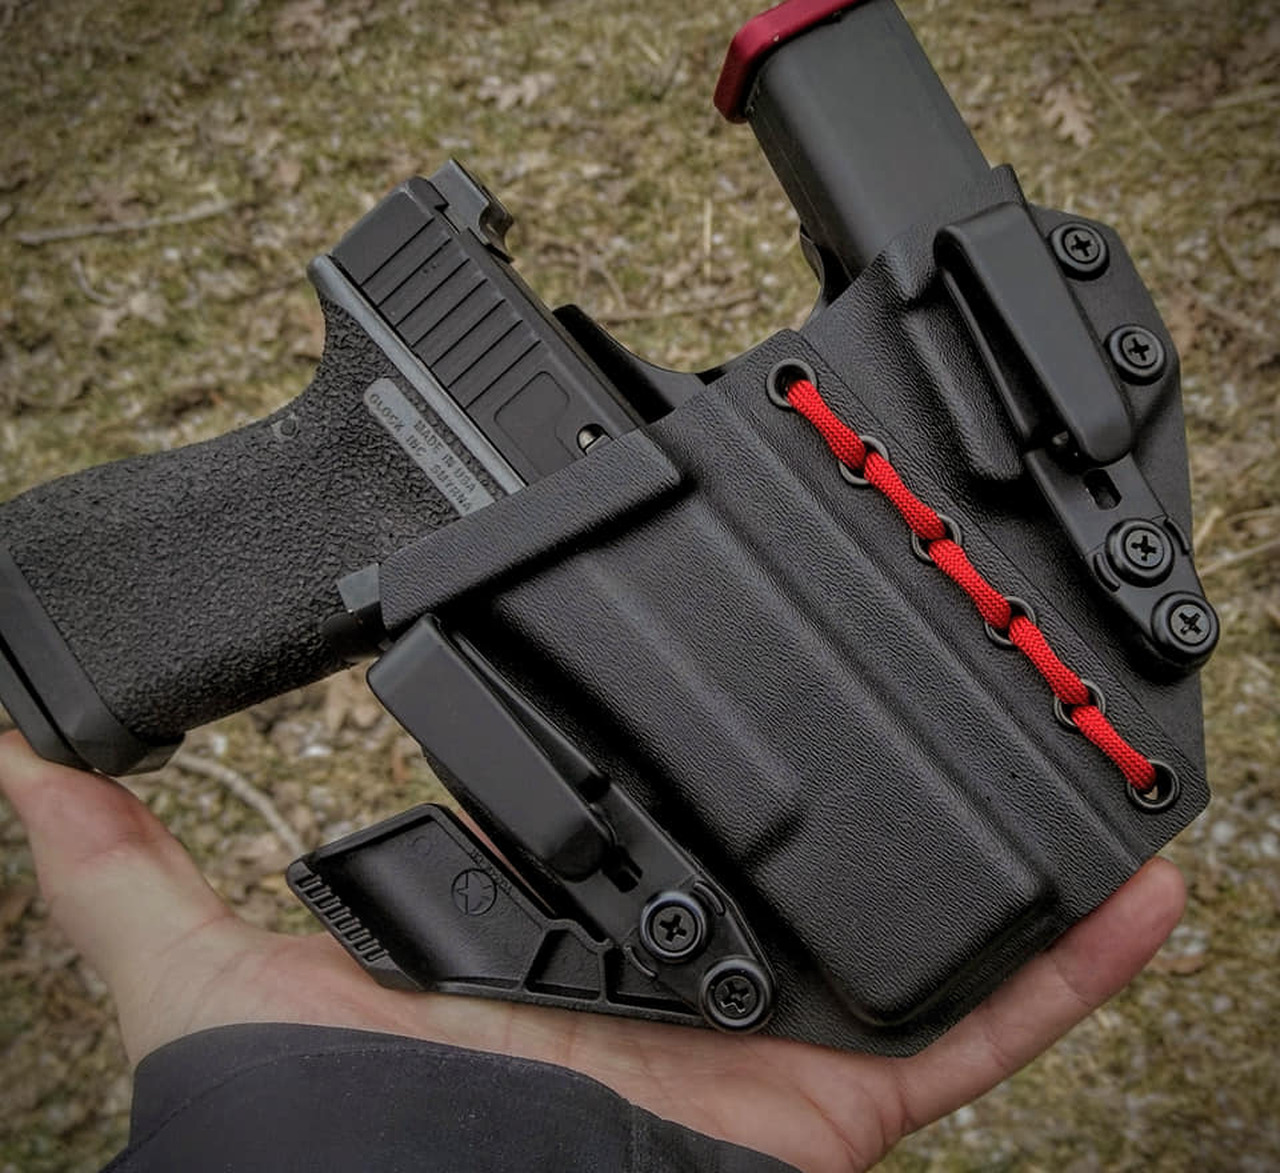 Glock 19 Appendix Carry Rig Holster with Shockcord